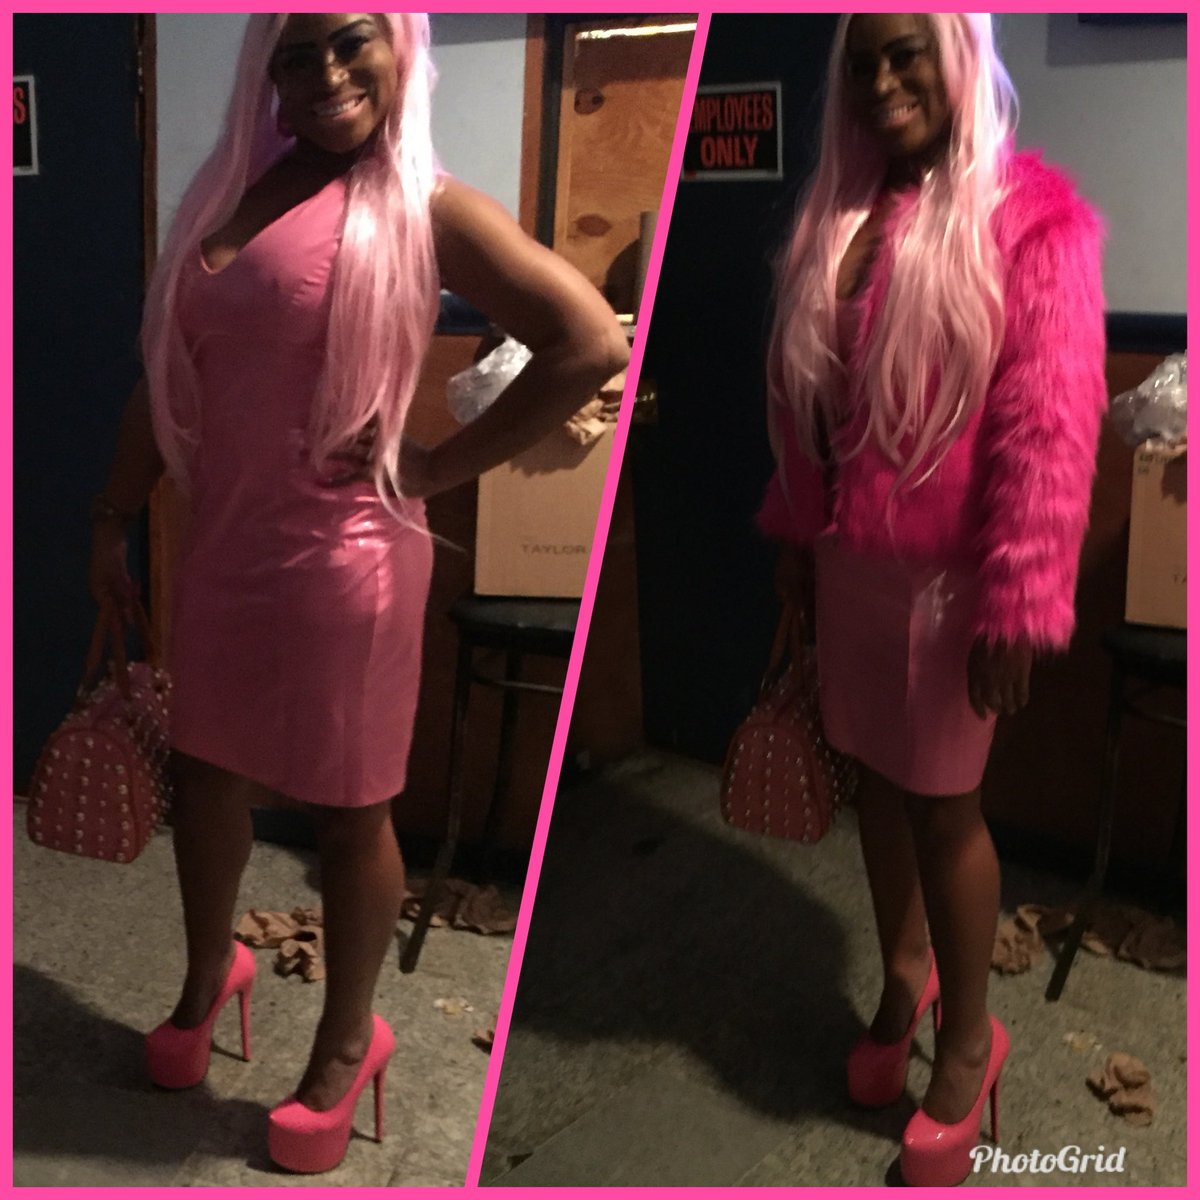 Show off my wicked curves when I step out in this dress.👗👠 👛I'm a black barbie doll, niggas love me they be sending me gifts cause I'm money when they ain't playing ball!  #WickedCurves